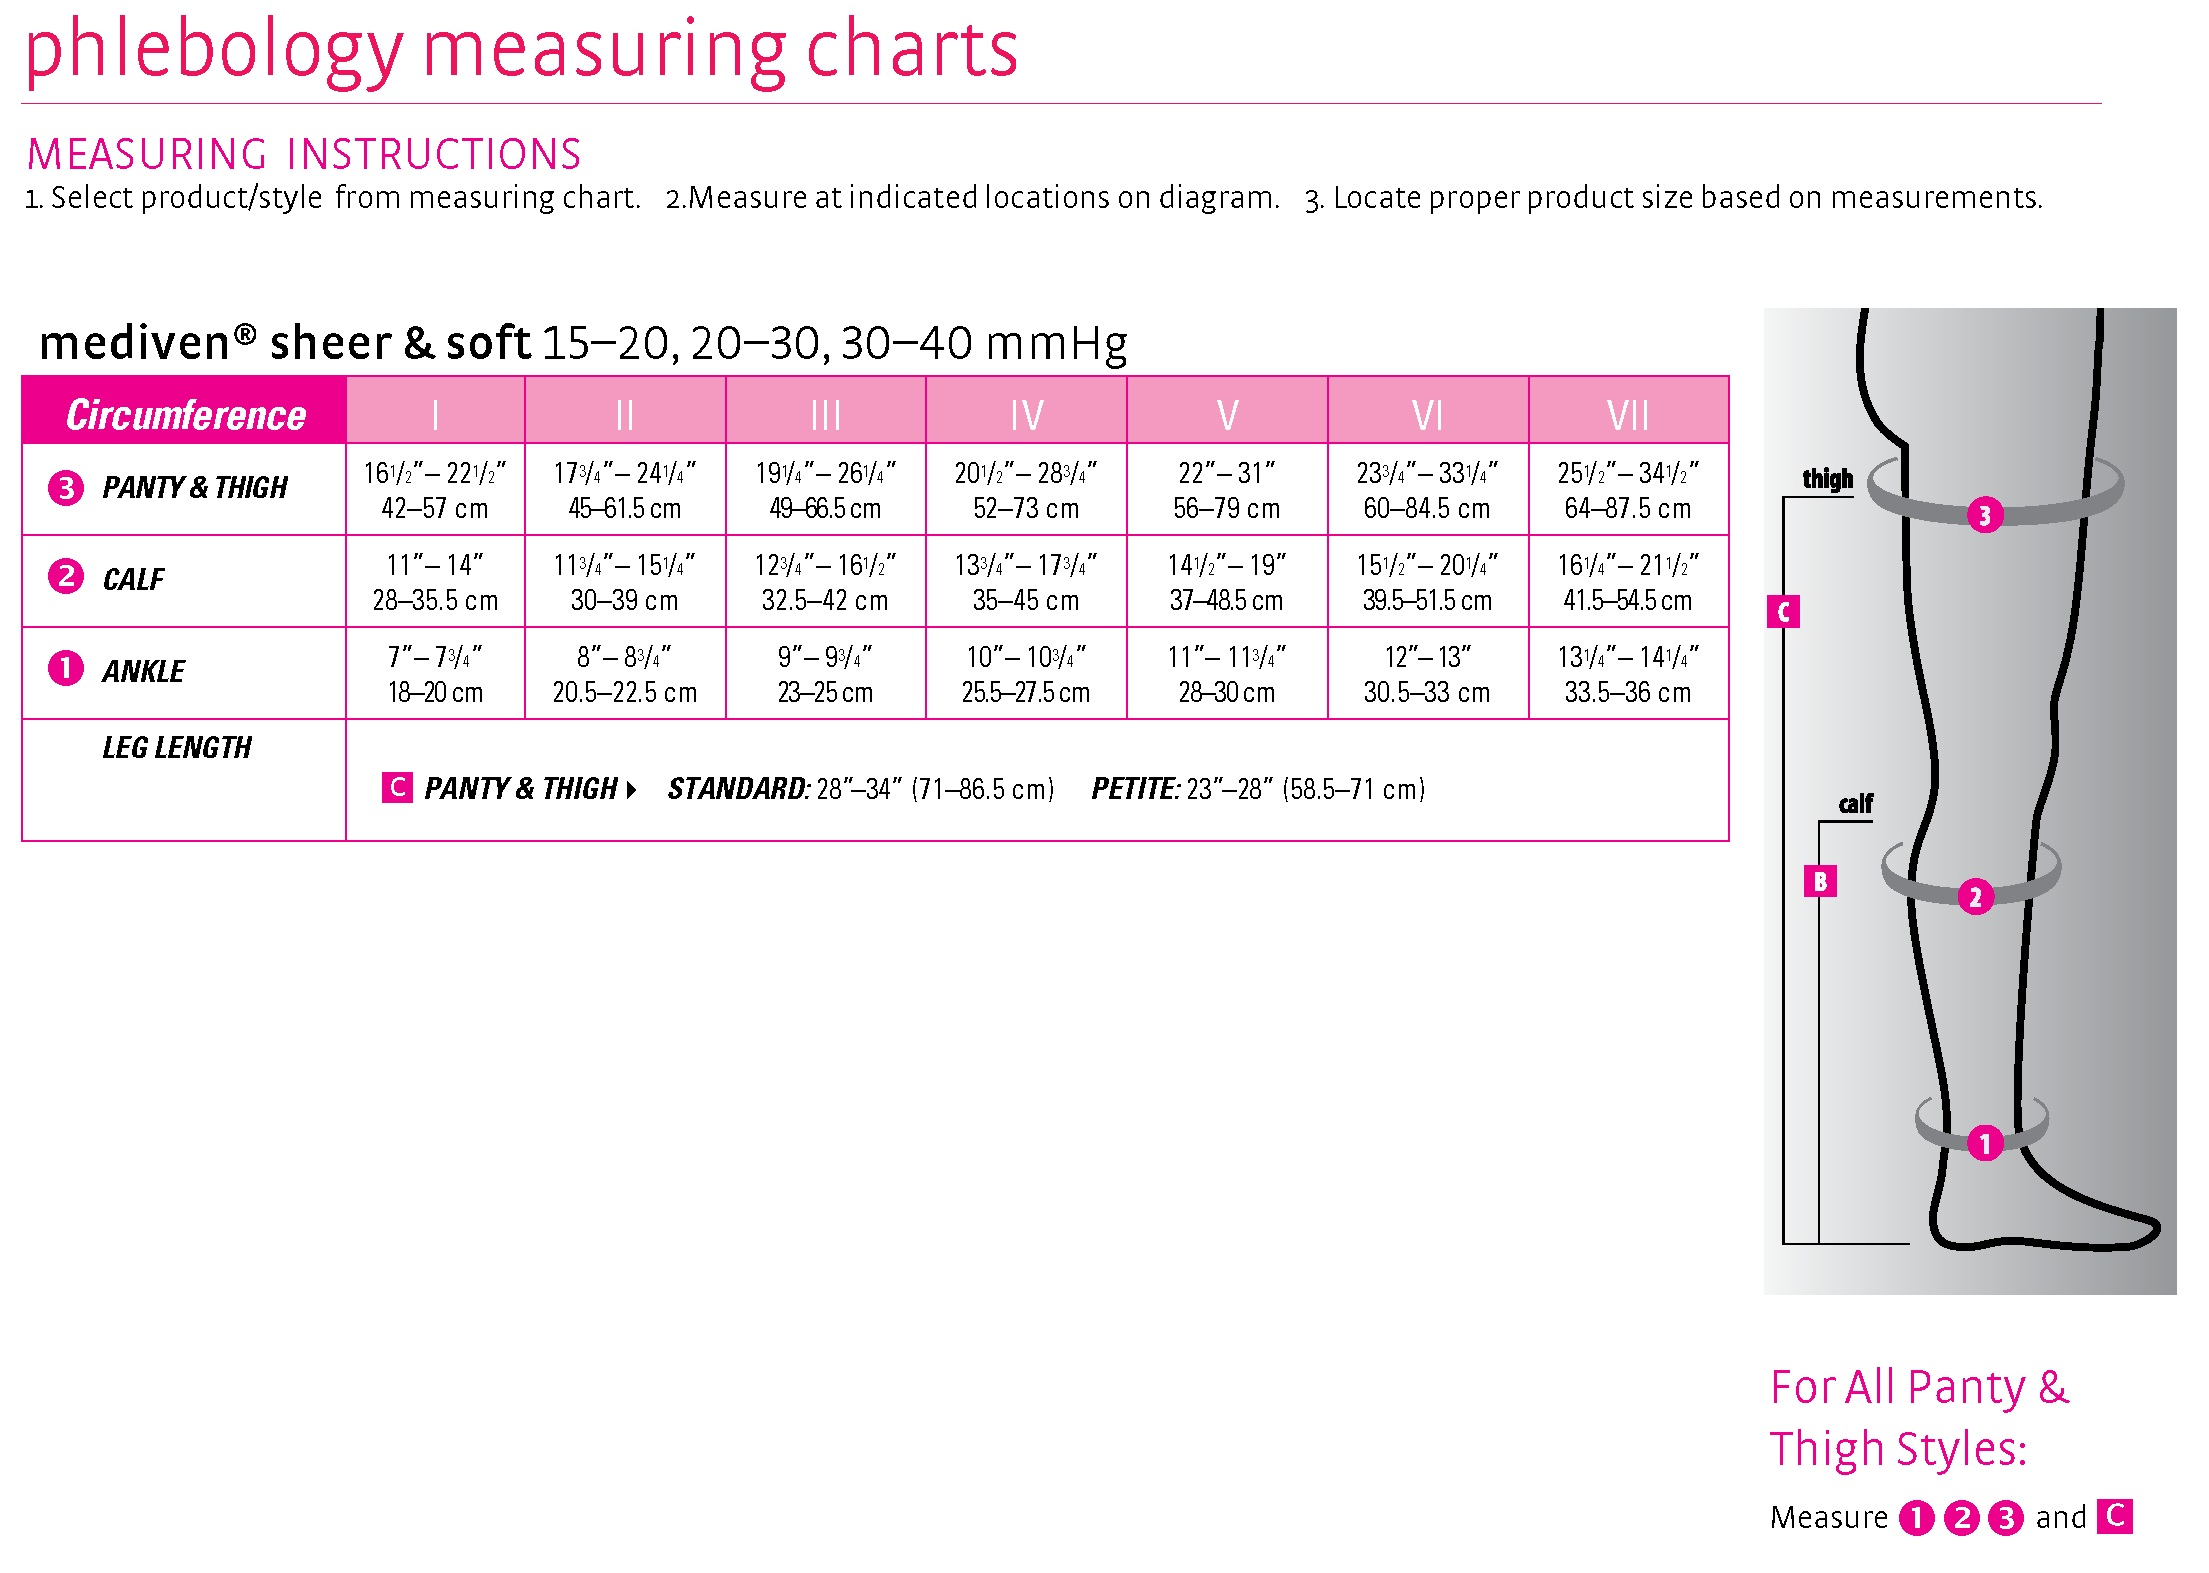 1d19f96e33 For All Panty & Thigh Styles: Measure 1, 2, 3 and C